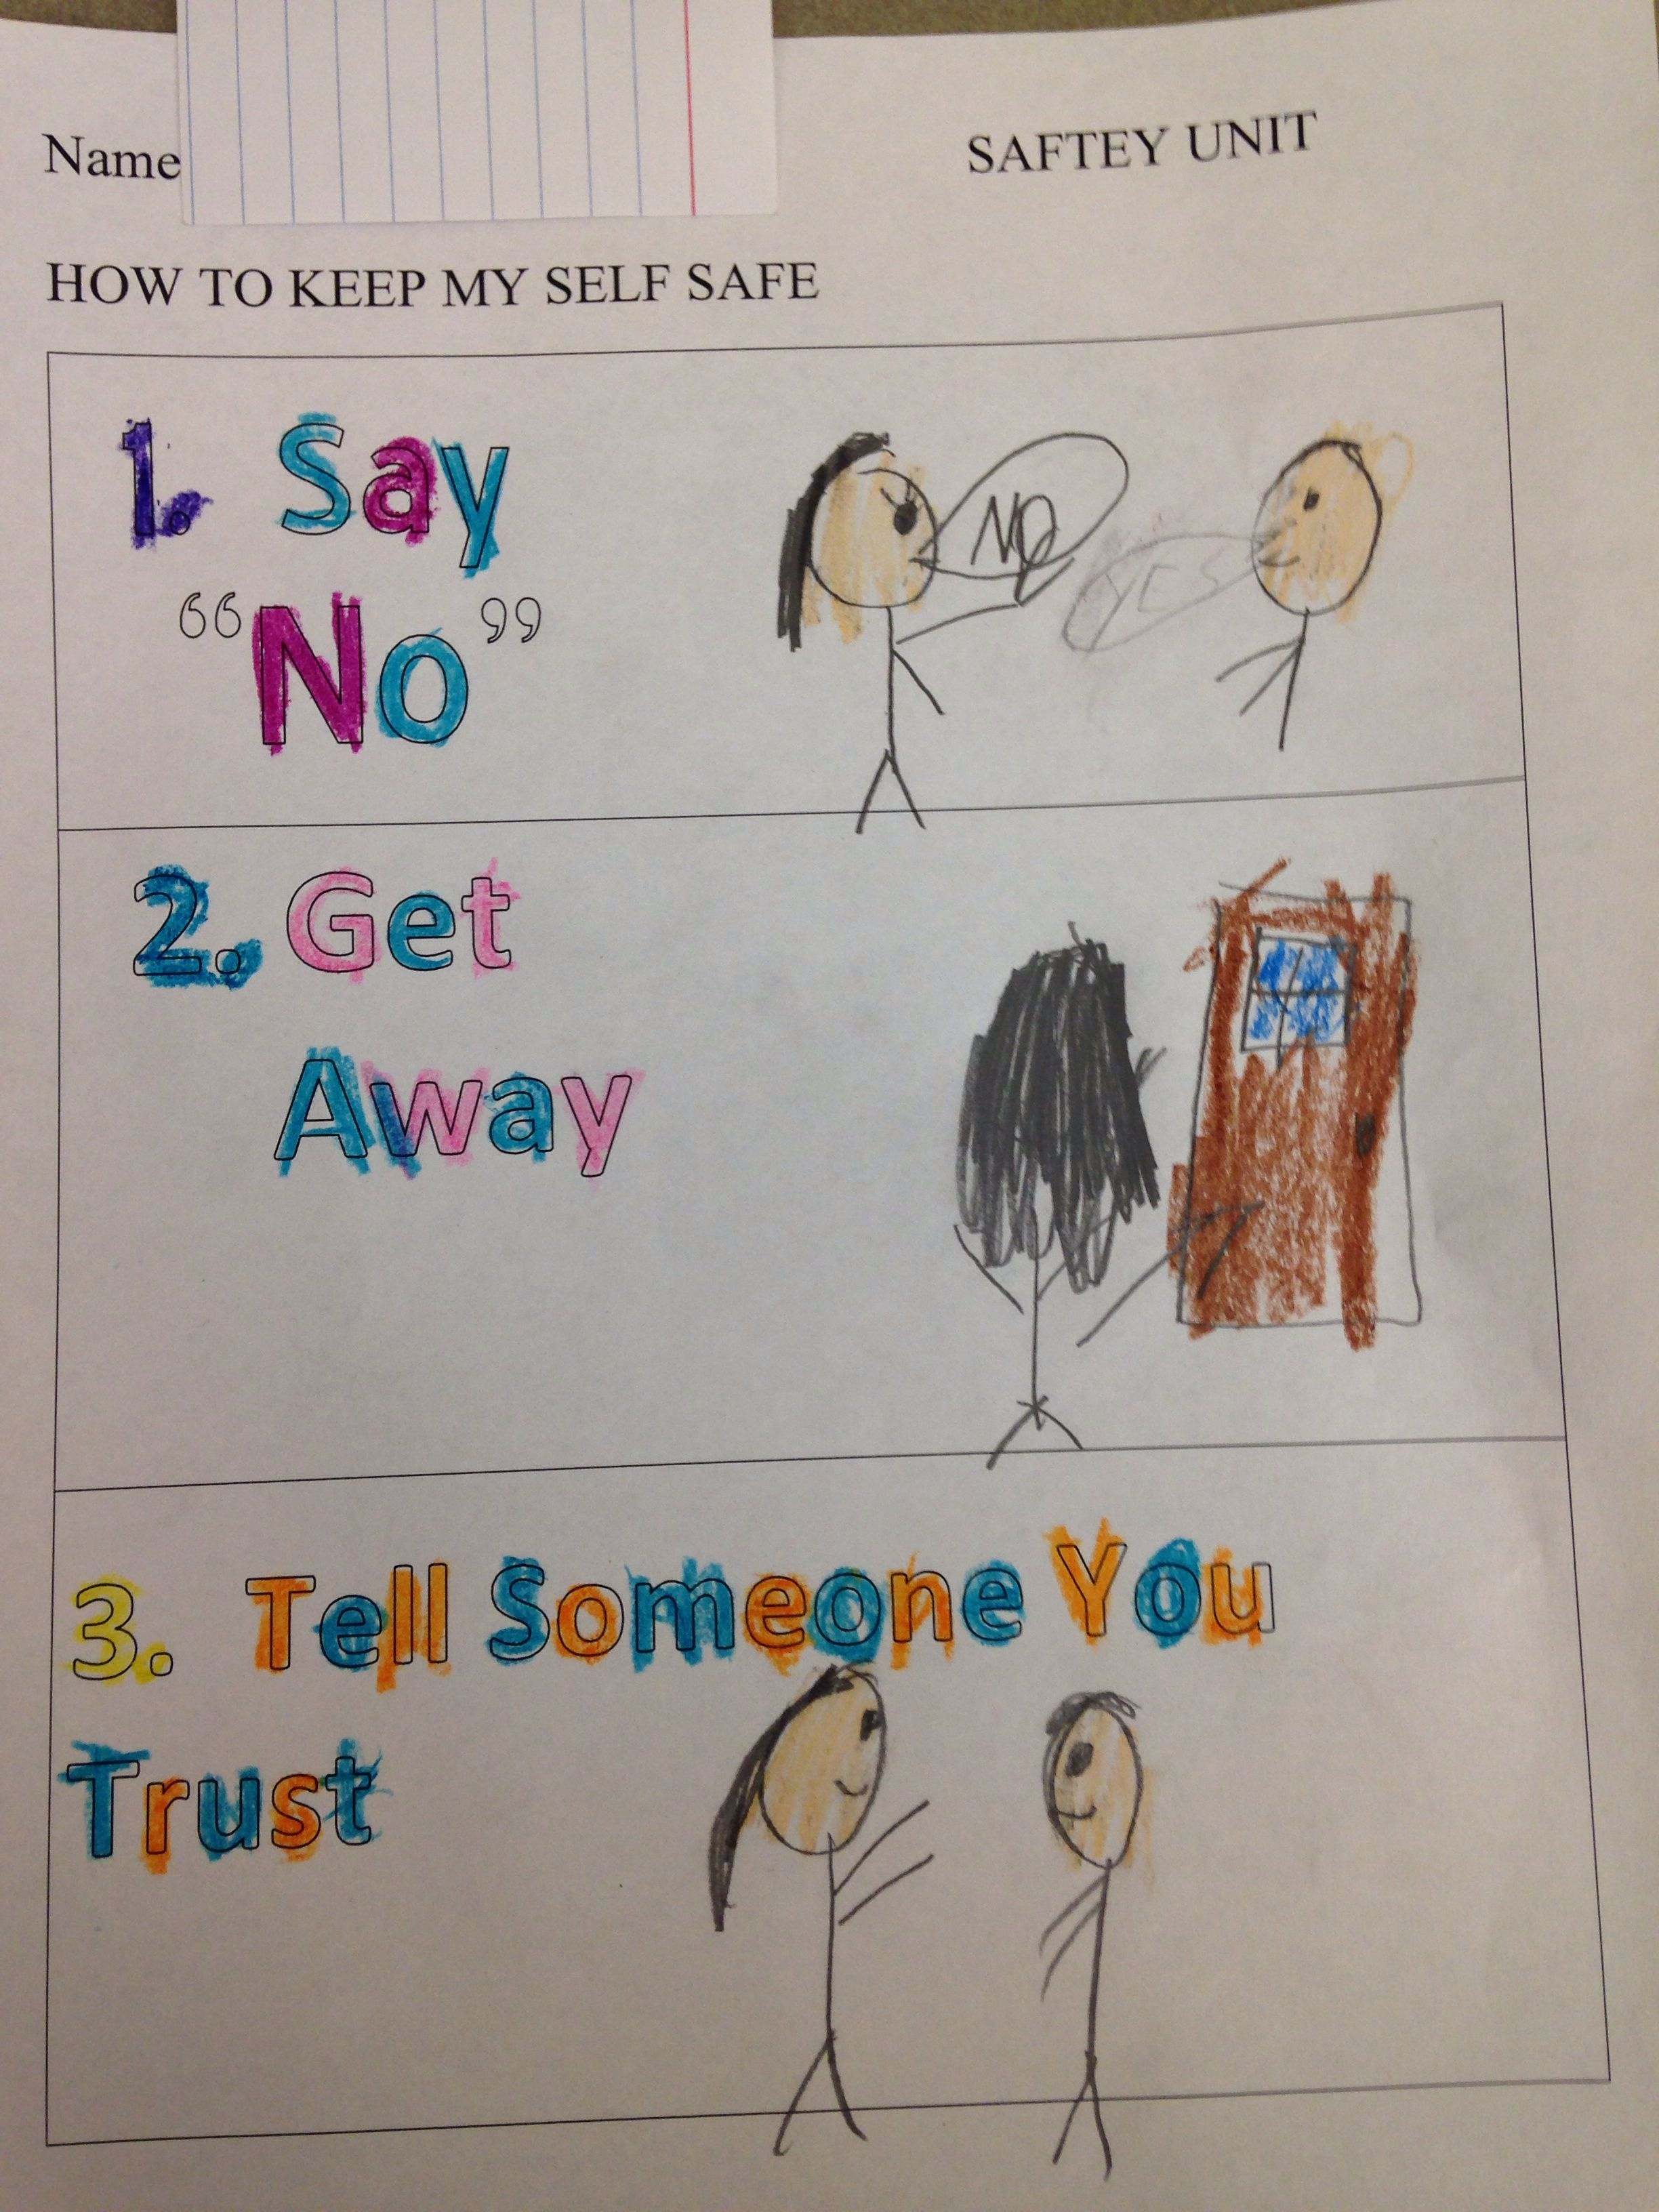 Worksheets From The First Lesson In My Safety Unit. We Talked About - Free Printable Good Touch Bad Touch Coloring Book